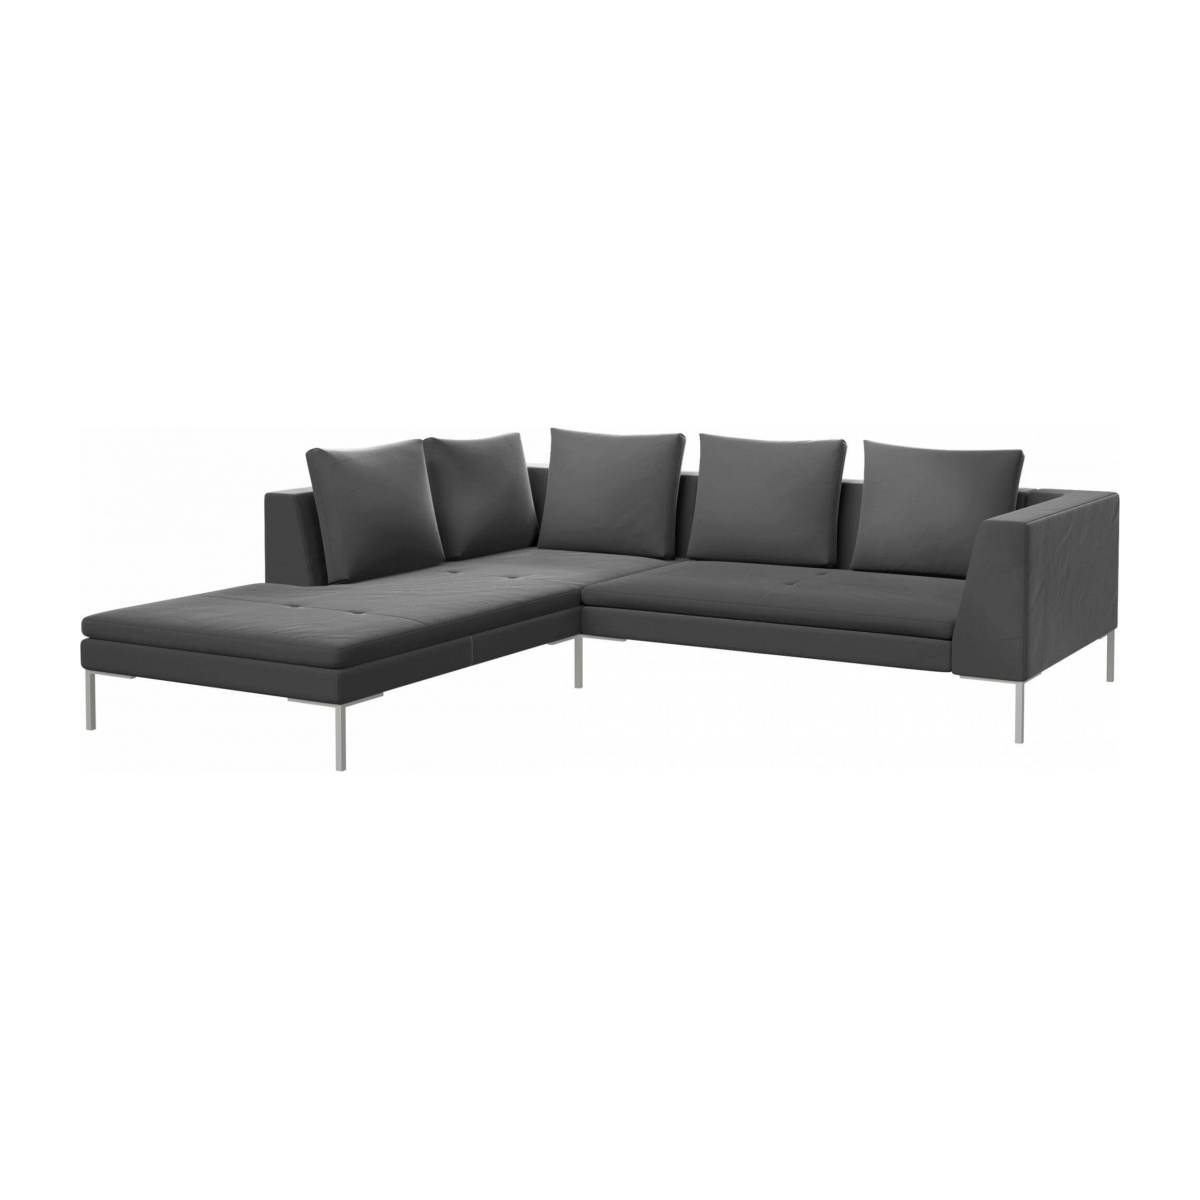 2 seater sofa with chaise longue on the left in Super Velvet fabric, silver grey  n°2